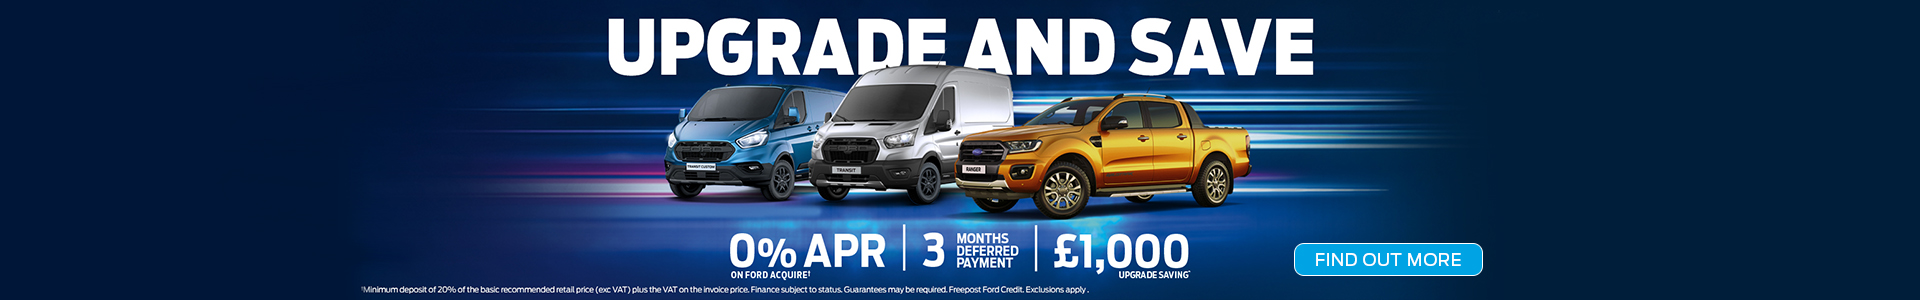 Upgrade and Save on Ford Vans